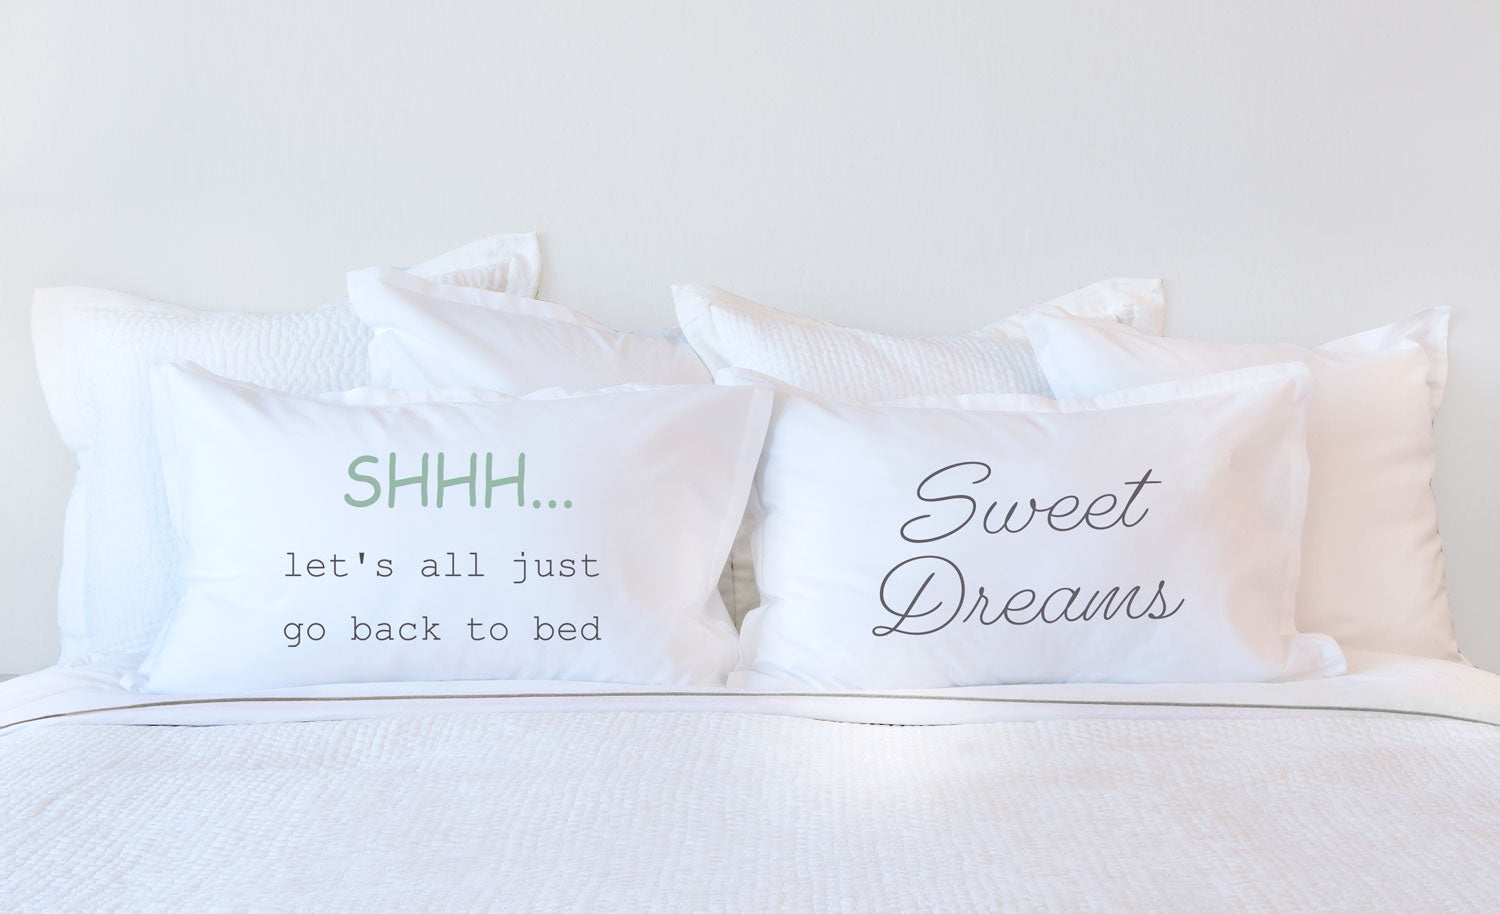 Shhh Let's All Just Go Back To Bed - Inspirational Quotes Pillowcase Collection-Di Lewis